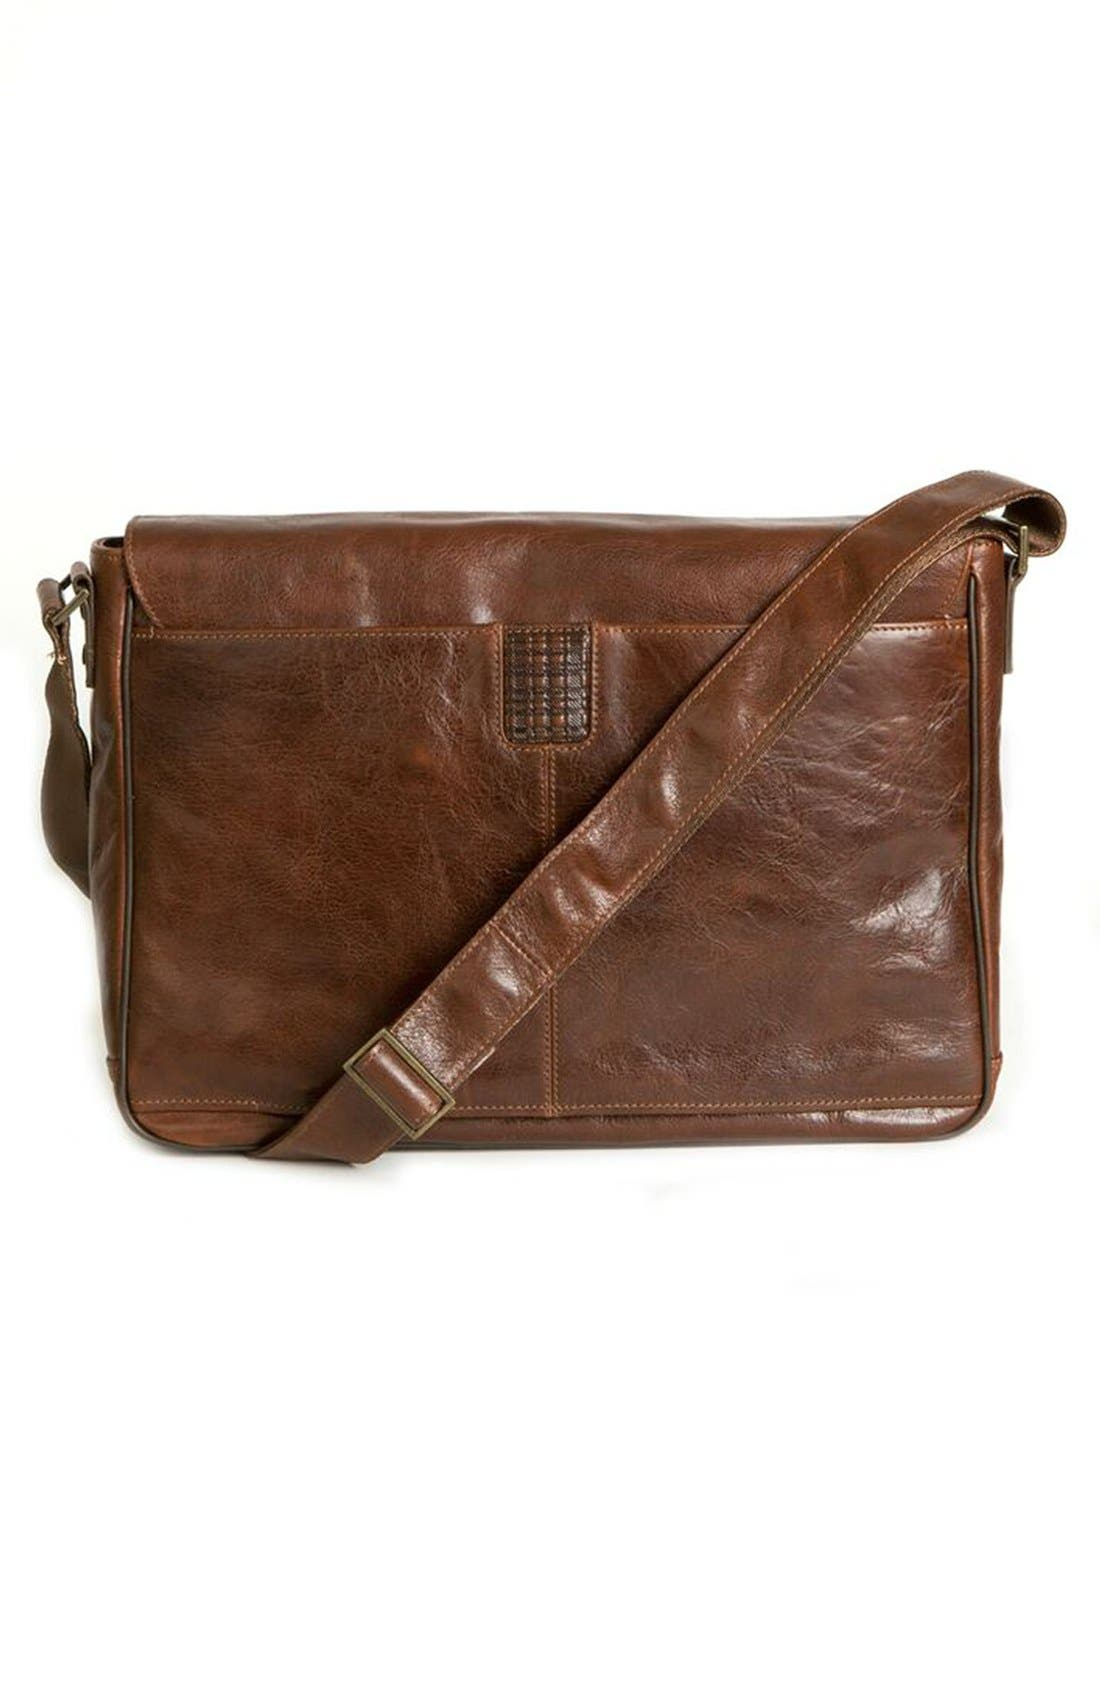 'Becker' Leather Messenger Bag,                             Alternate thumbnail 2, color,                             Whiskey